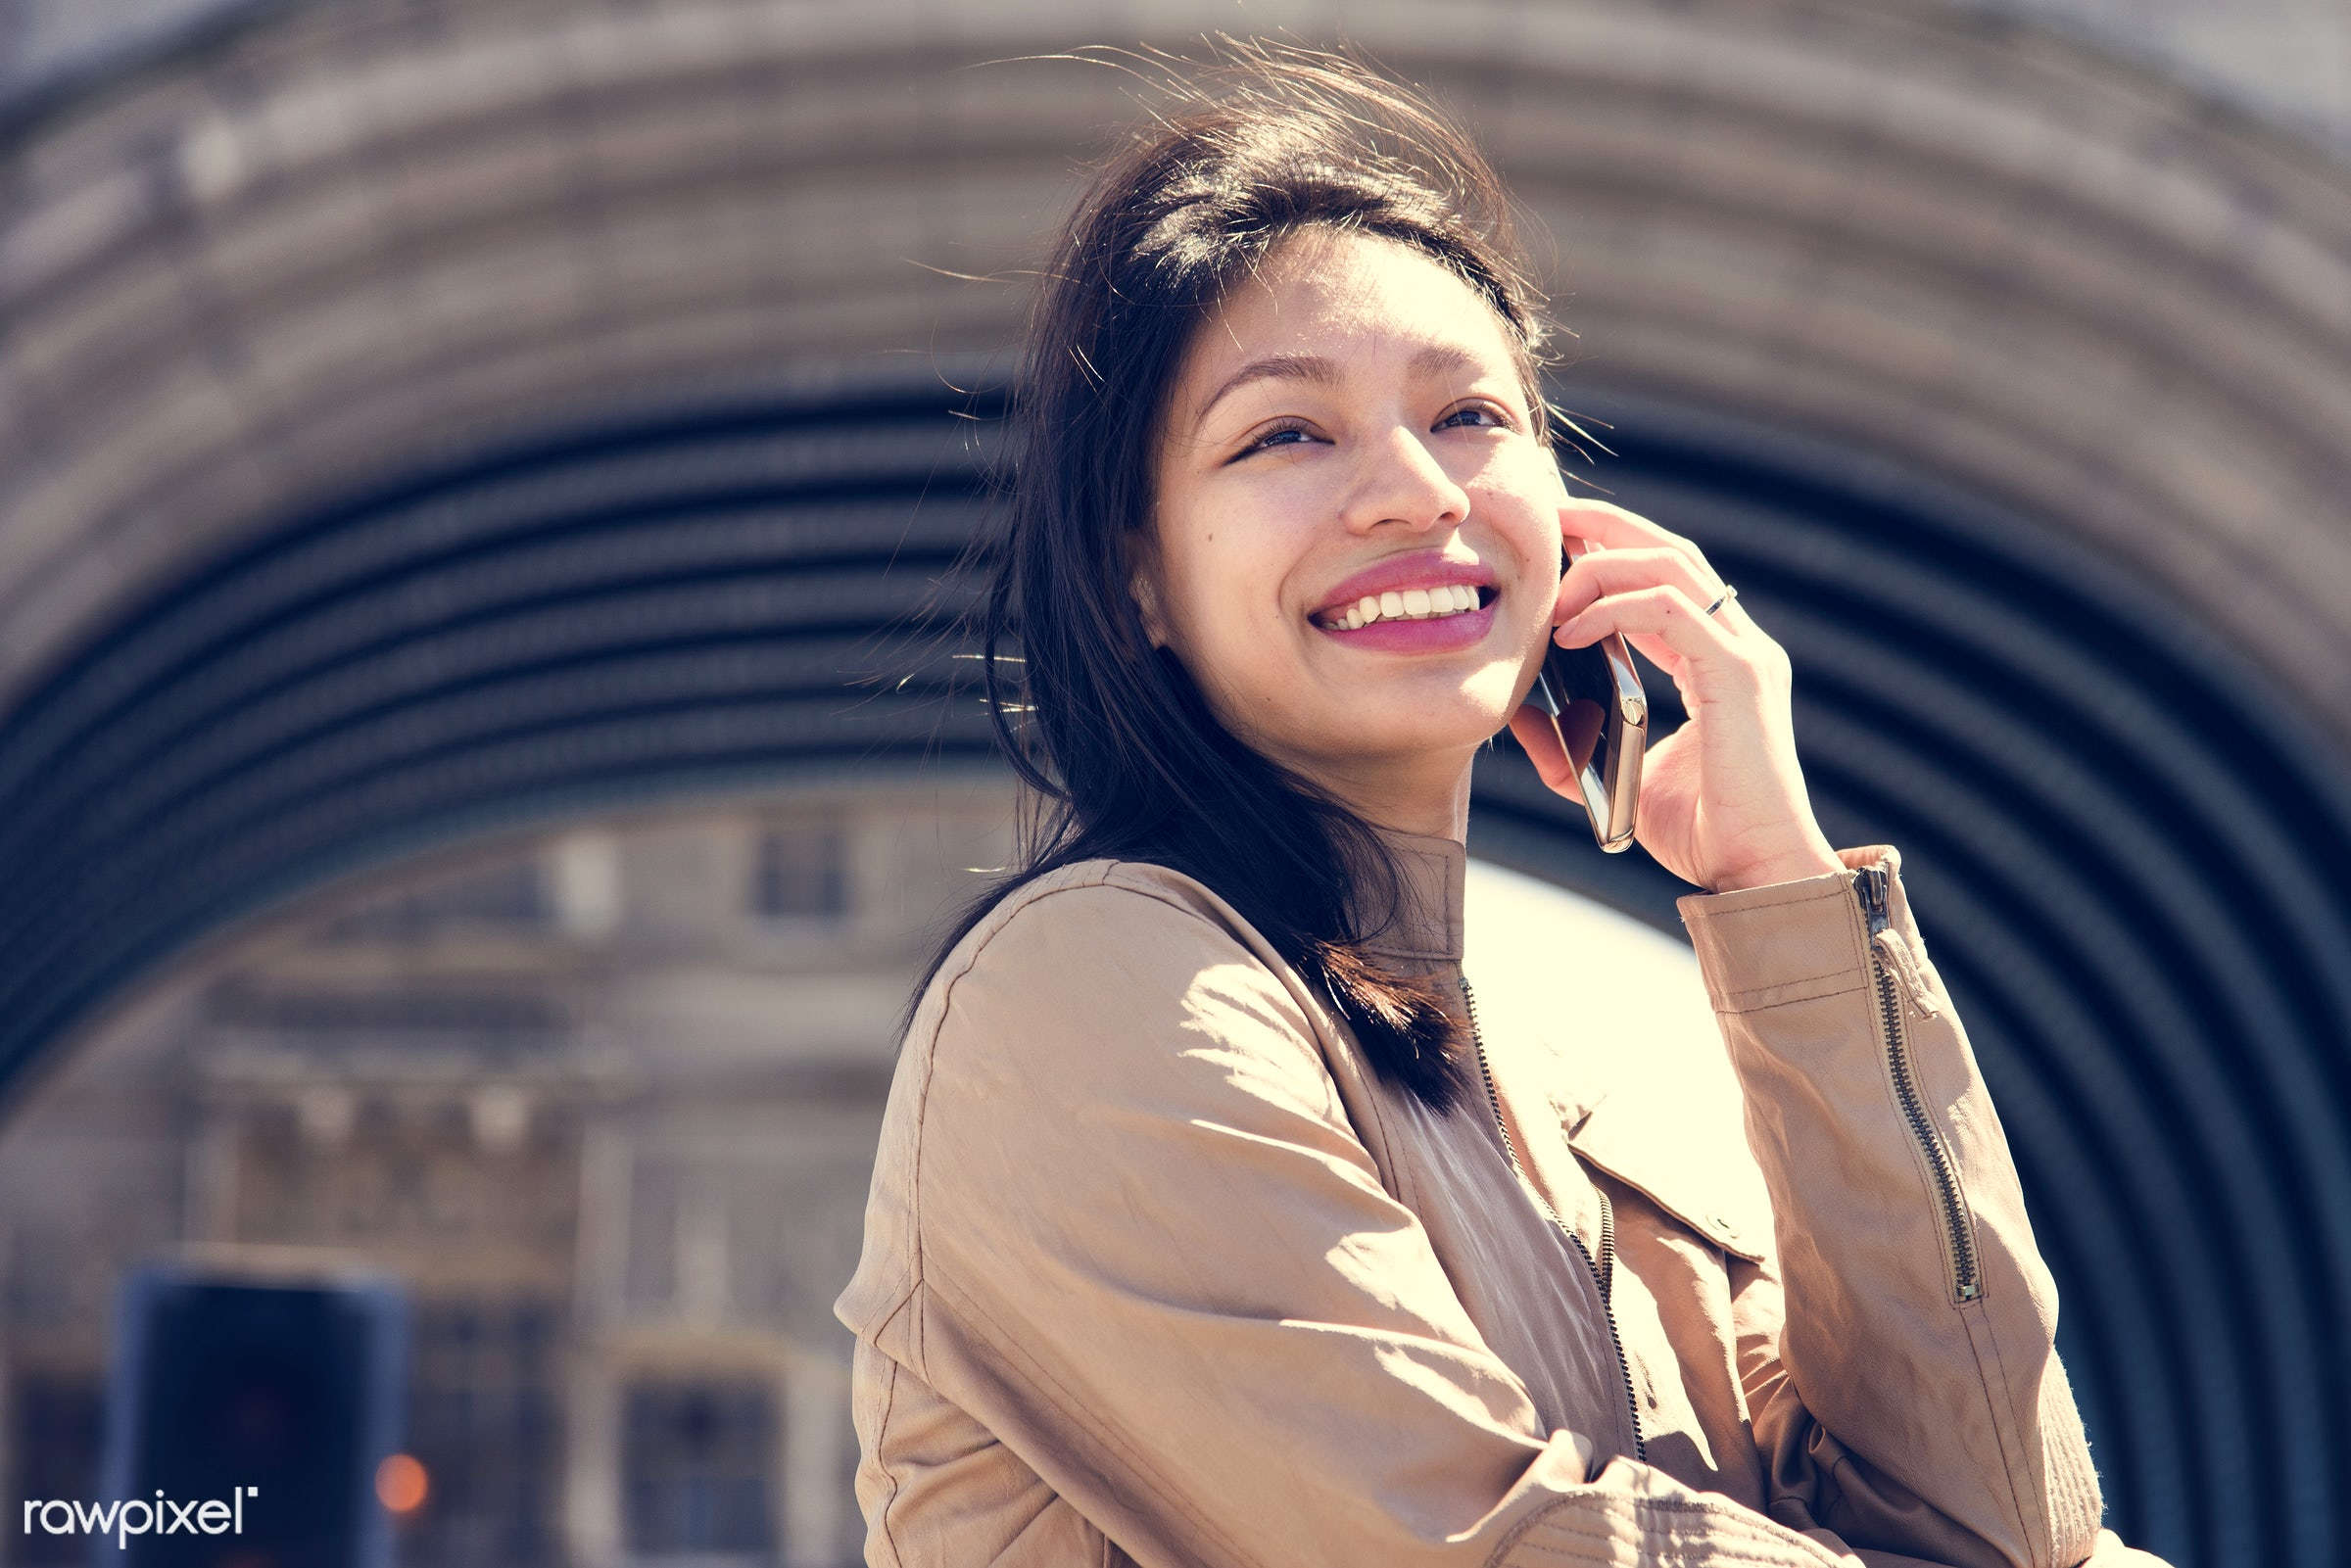 asian ethnicity, attractive, beautiful, beauty, call, calling, candid, casual, cheerful, city, conversation, device, female...